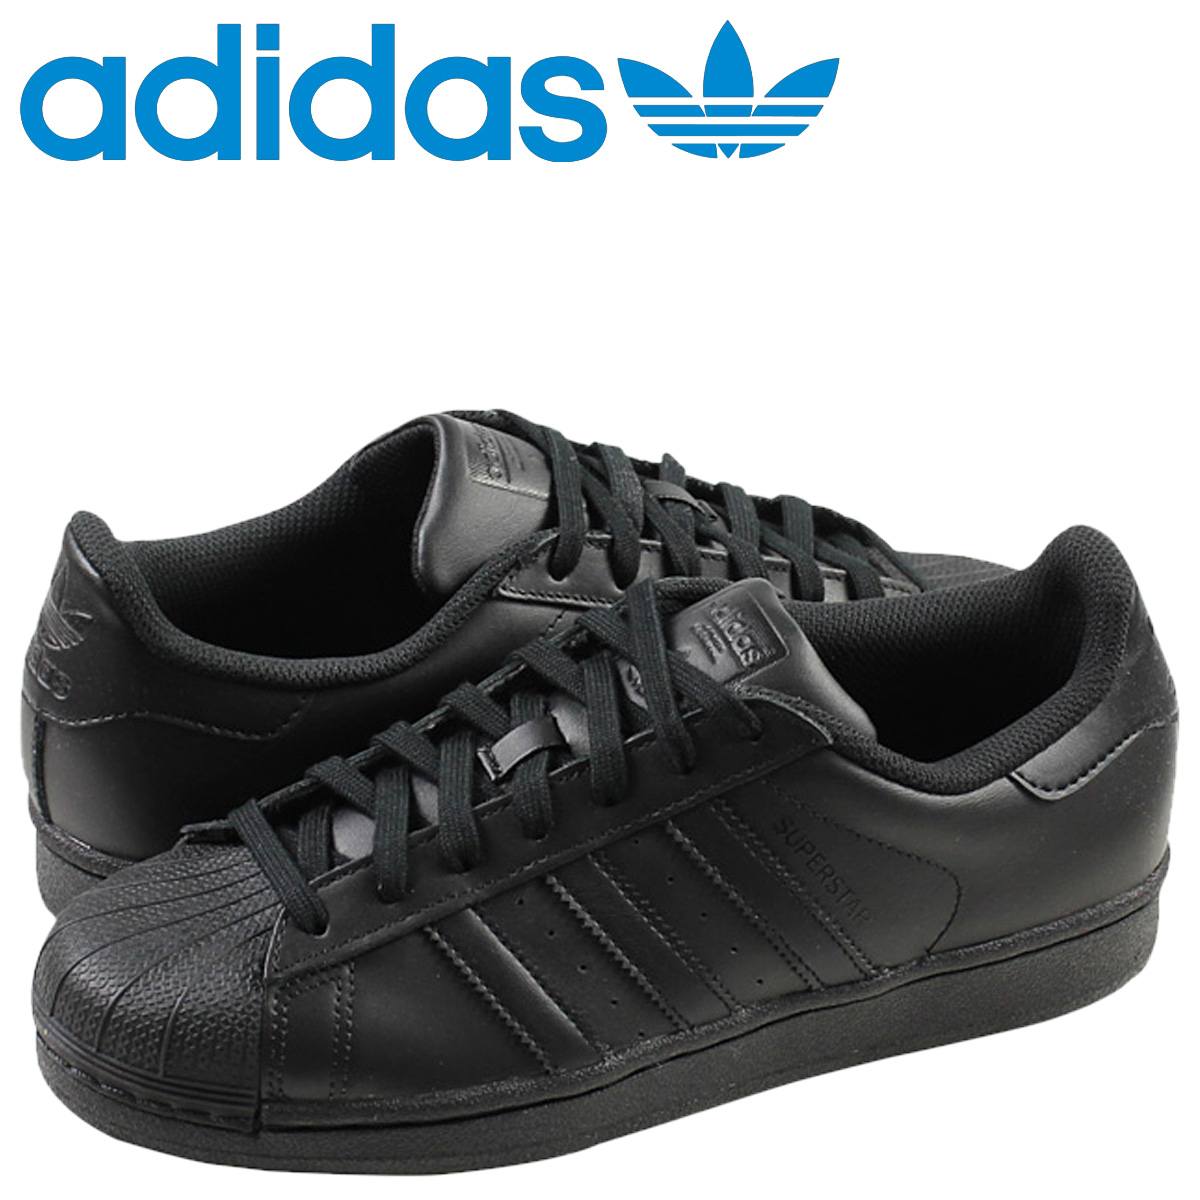 adidas Originals Adidas originals superstar sneakers SUPERSTAR FOUNDATION AF5666 men gap Dis shoes black black